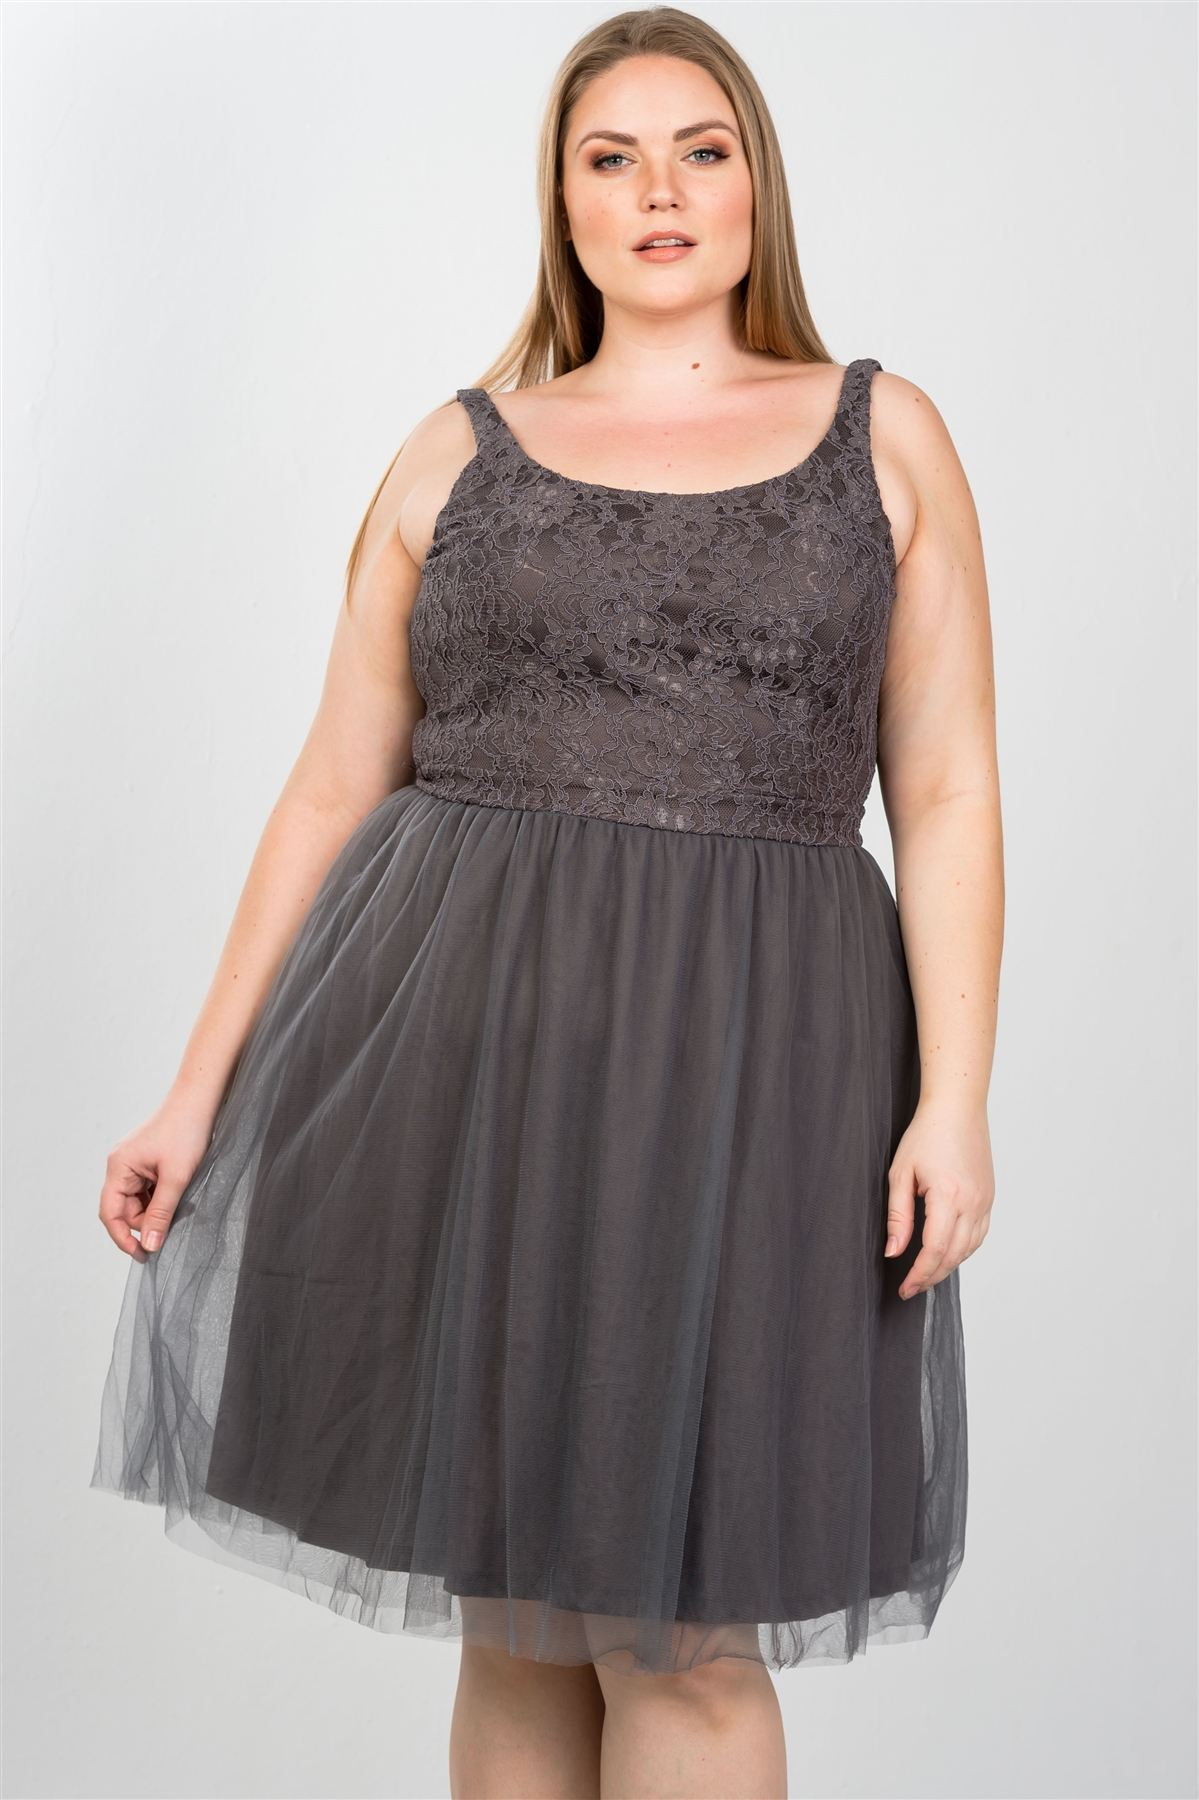 Ladies fashion plus size lace top midi dress with tulle skirt - Kendalls Deals